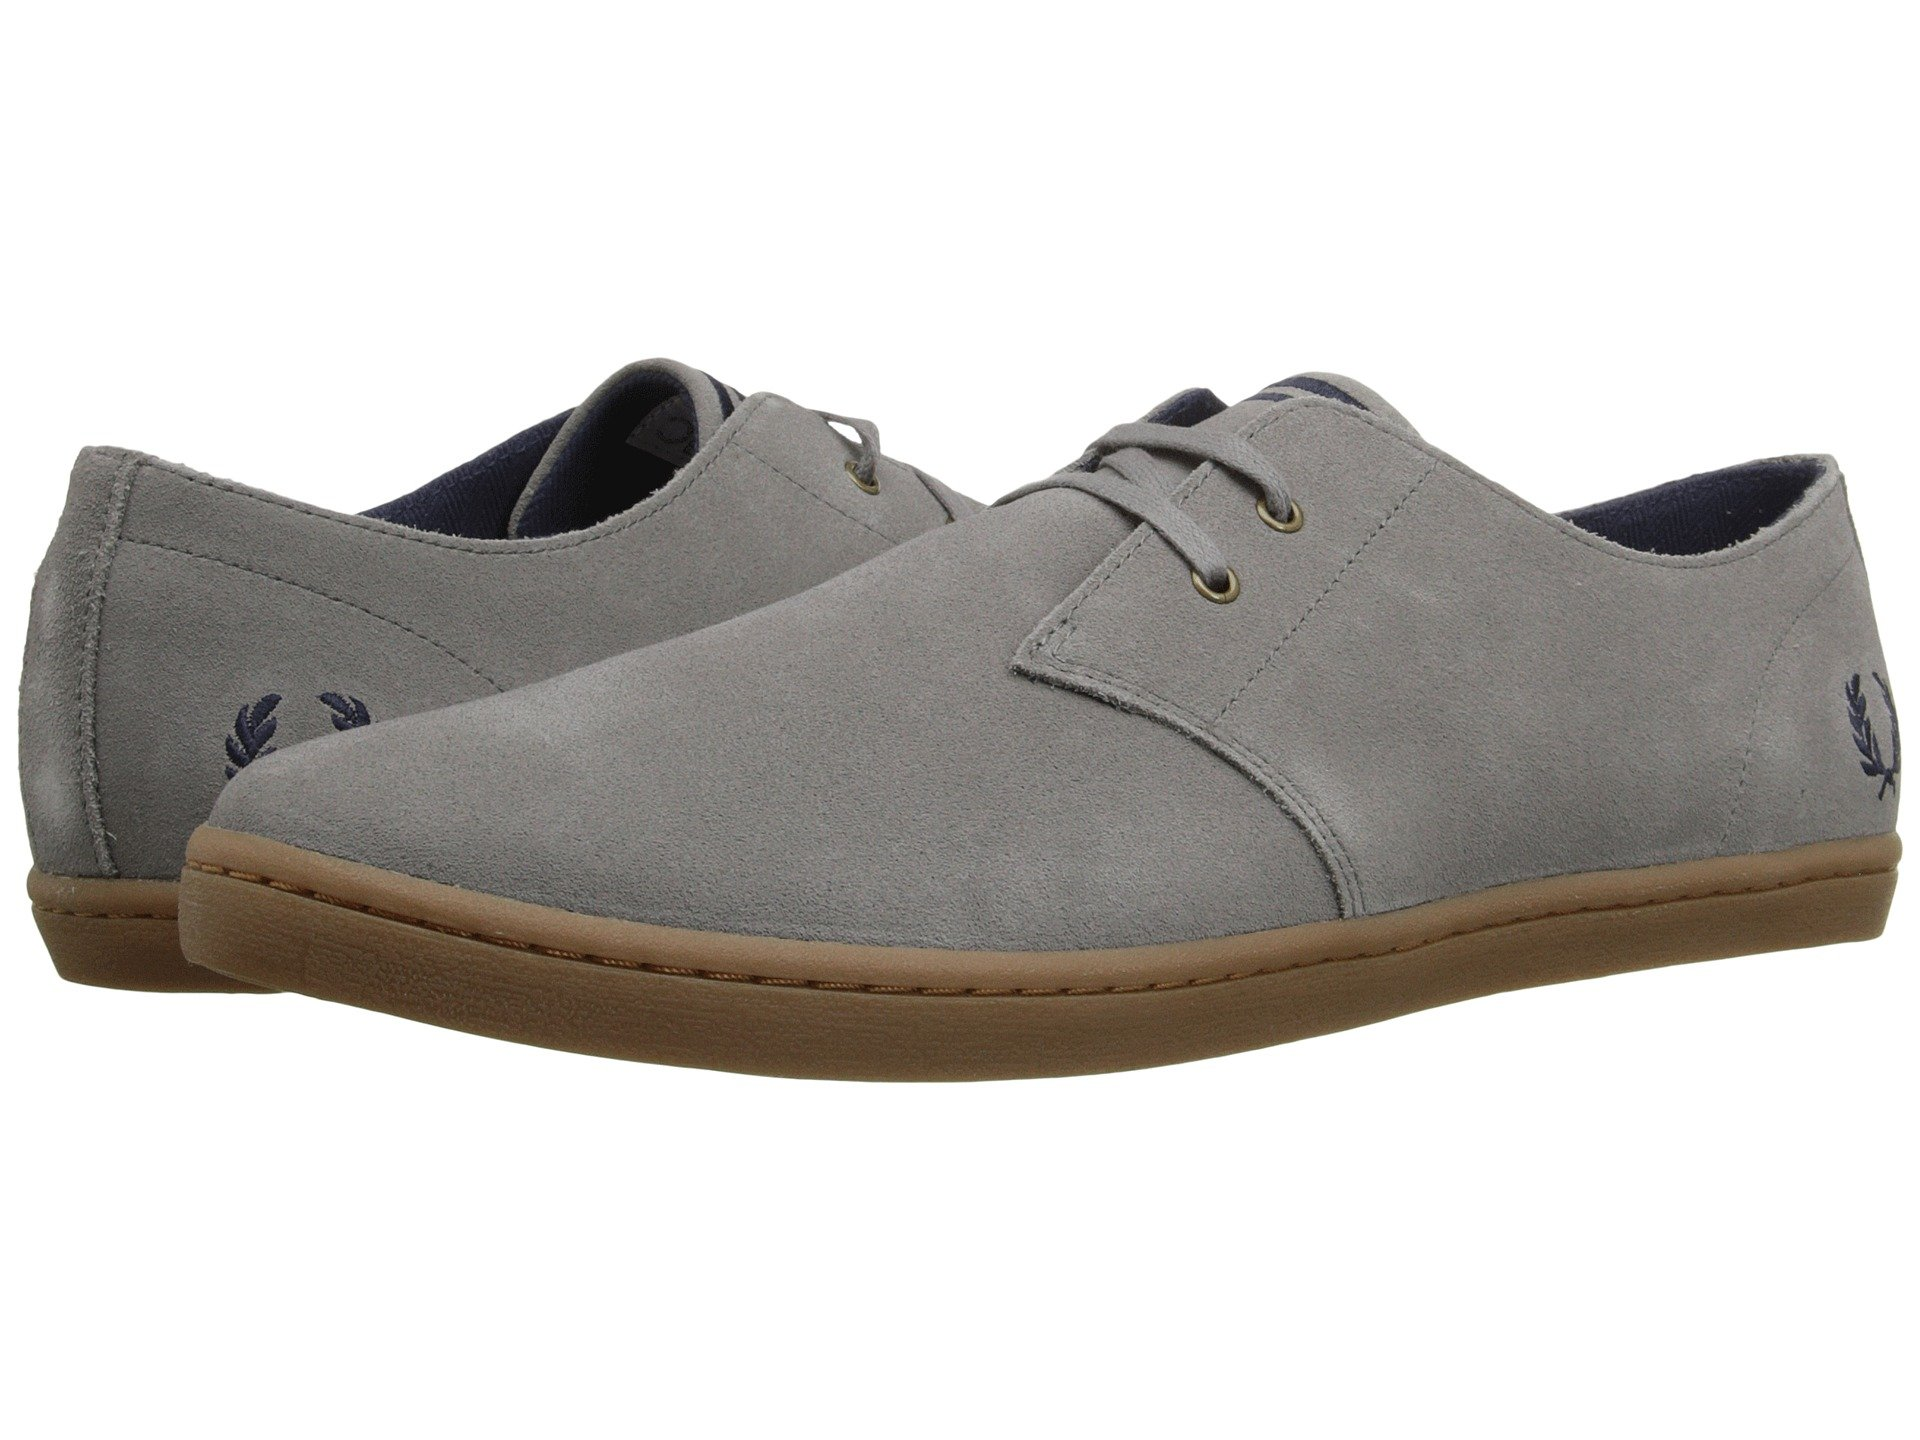 Baskets Fred Perry Byron Low Suede Falcon Grey Charcoal XGi3tlCJC